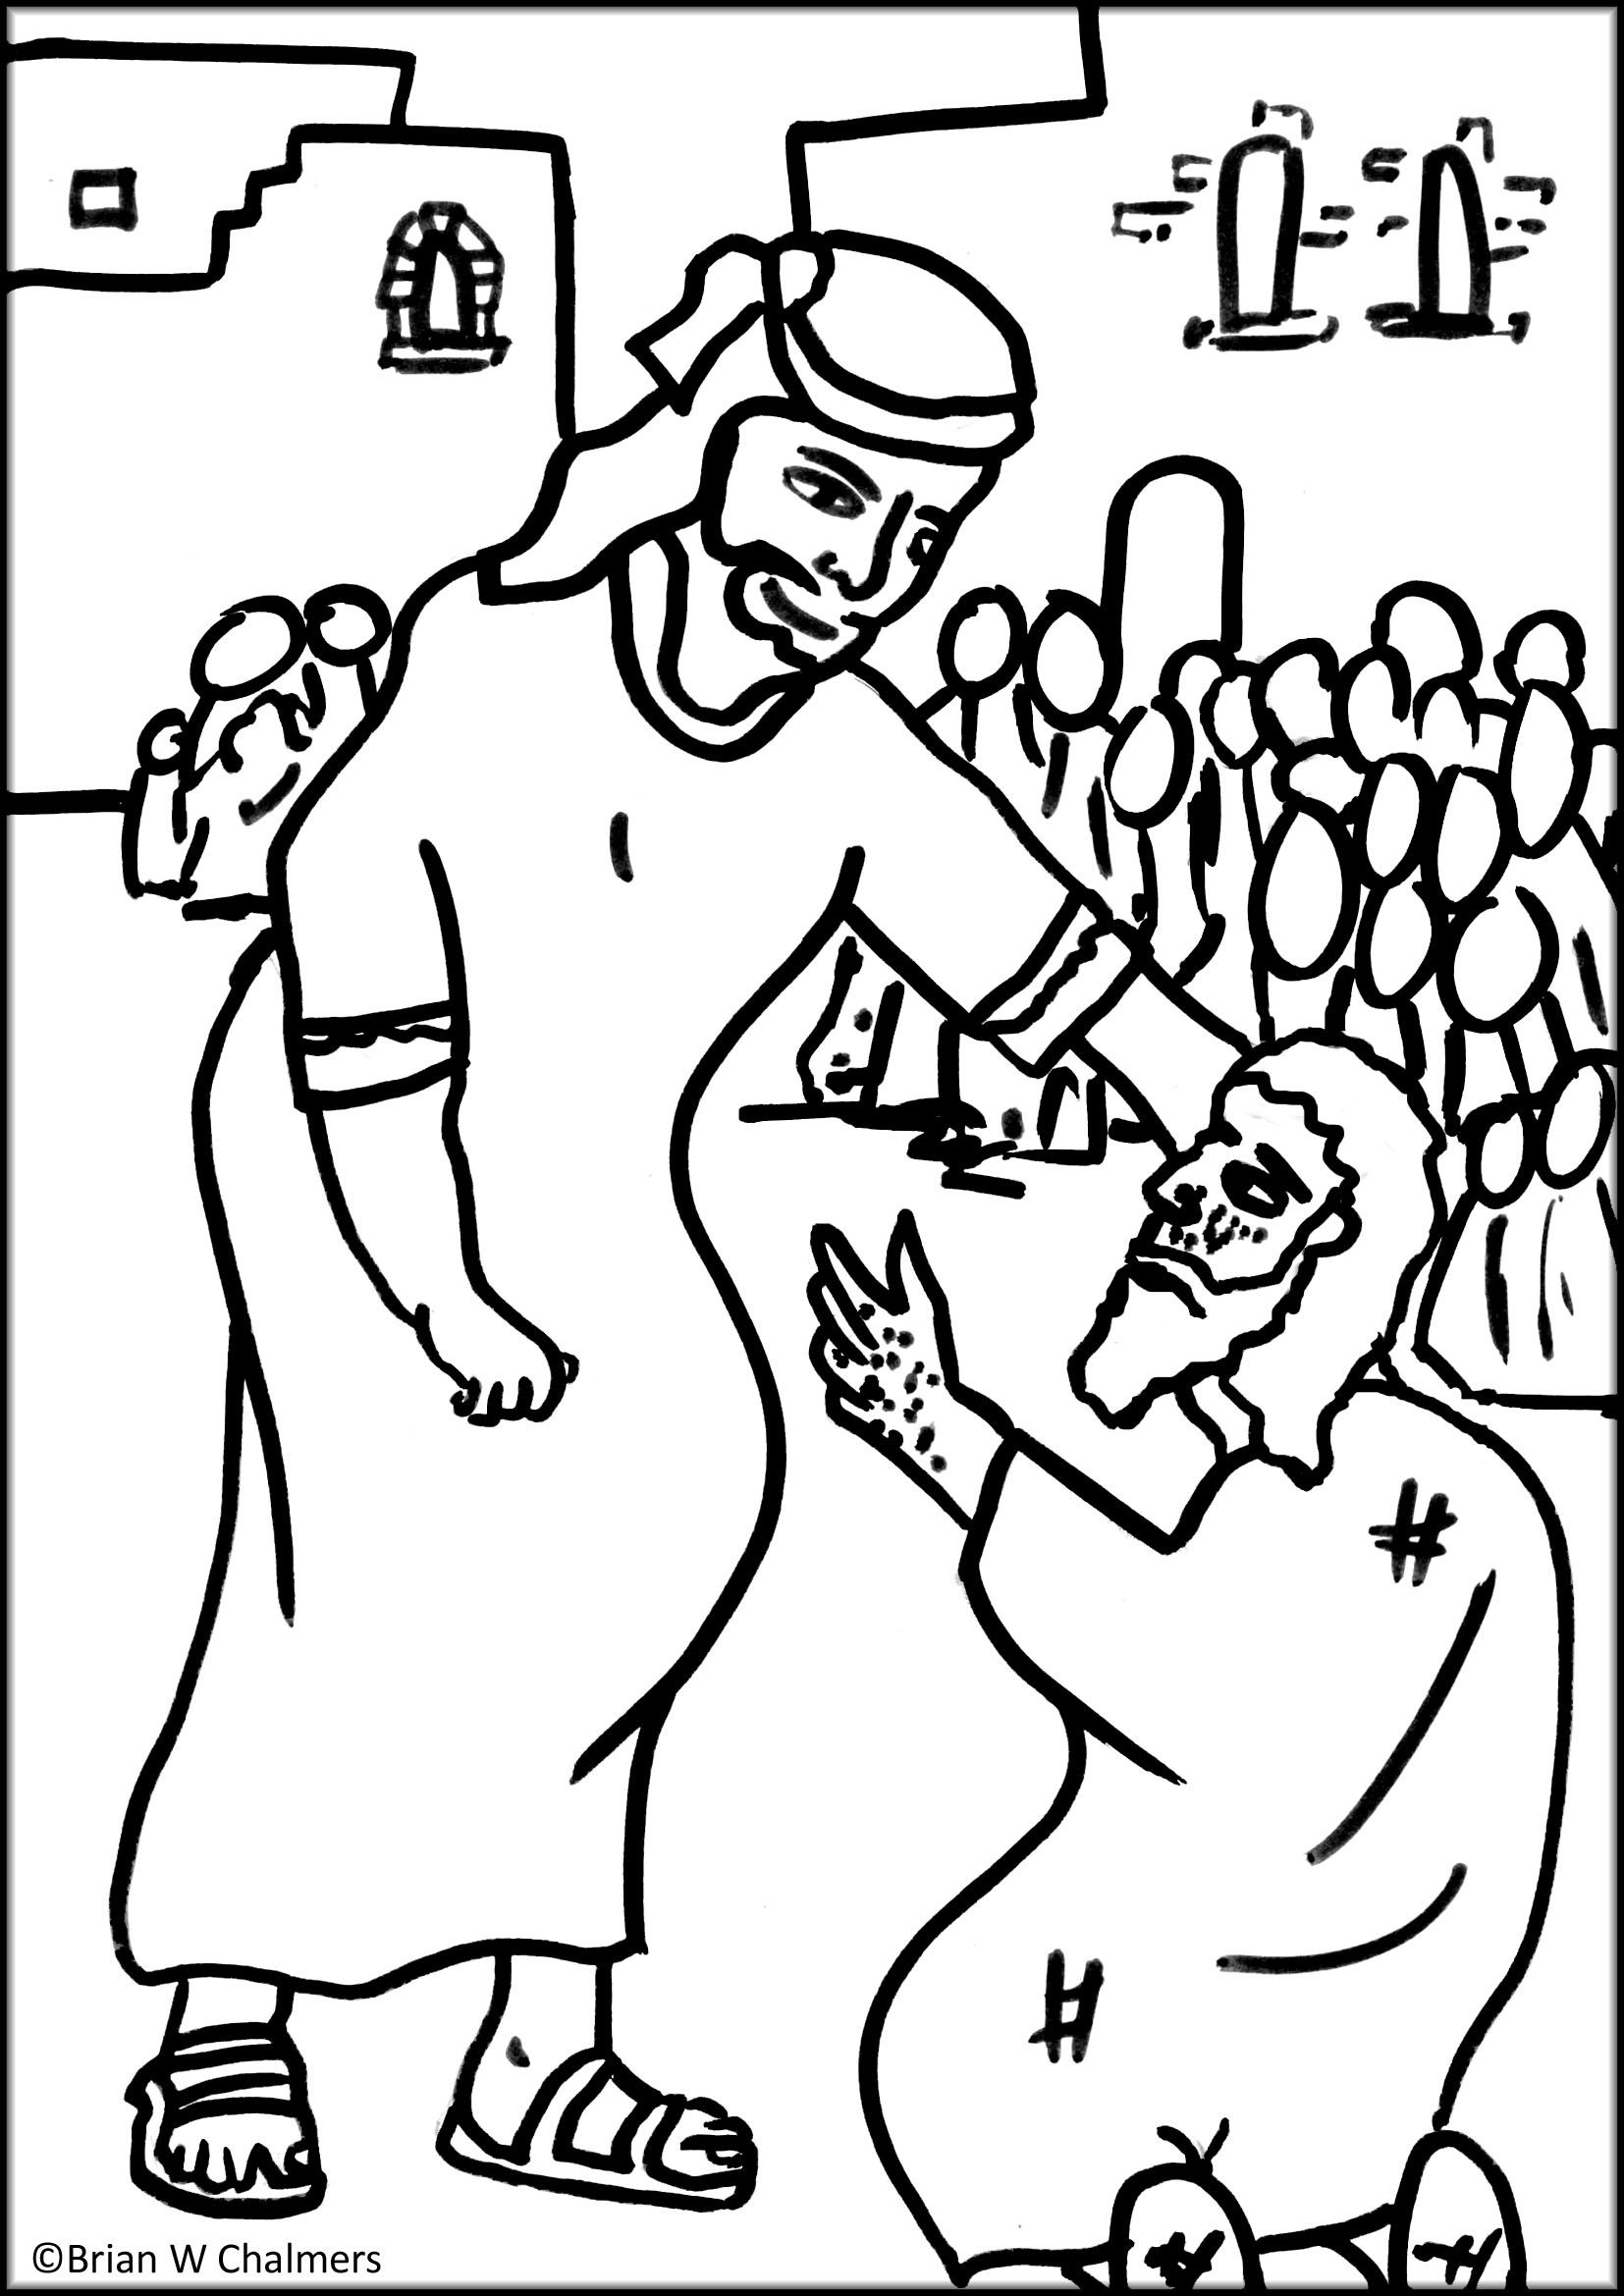 coloring pages healings of jesus | Jesus heals the 10 lepers - Coloring Page - SundaySchoolist